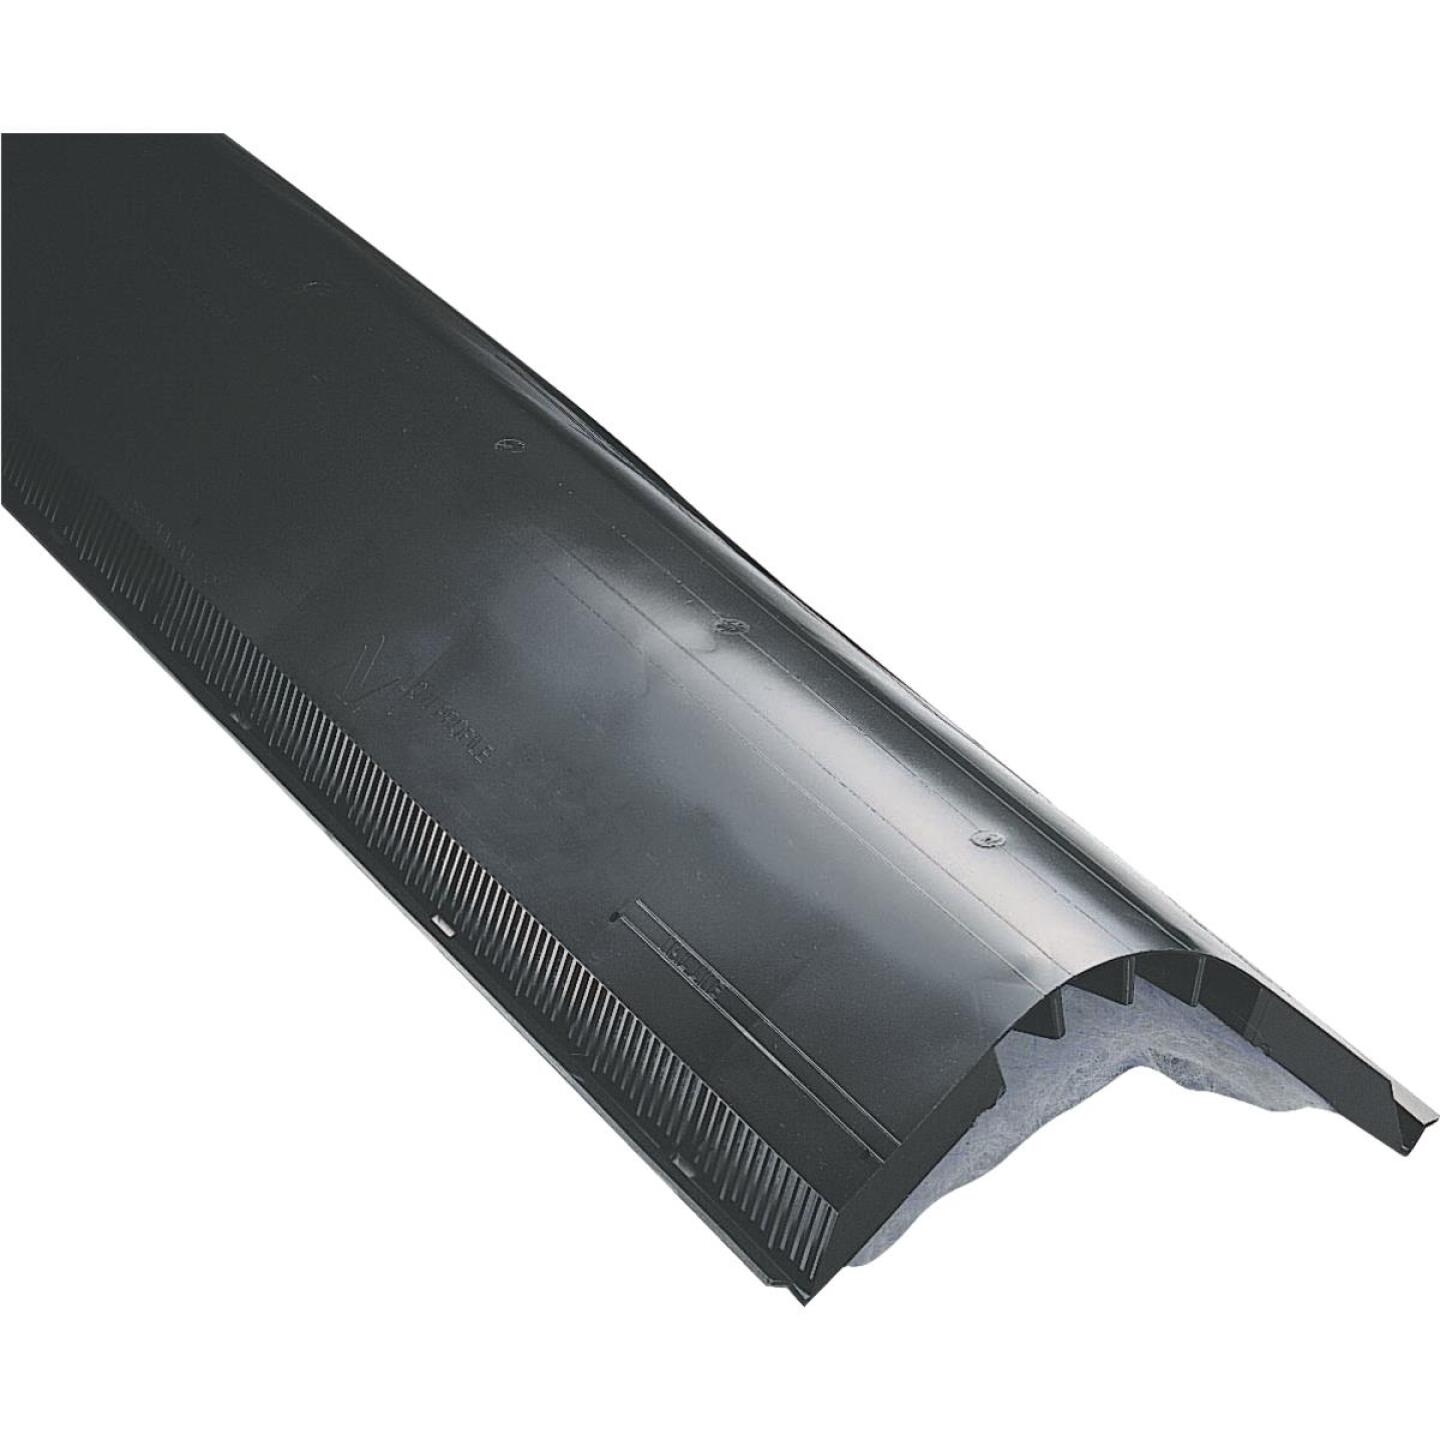 Air Vent Attic-Aire 48 In. Black Filtered Shingle-Over Ridge Vent Image 1